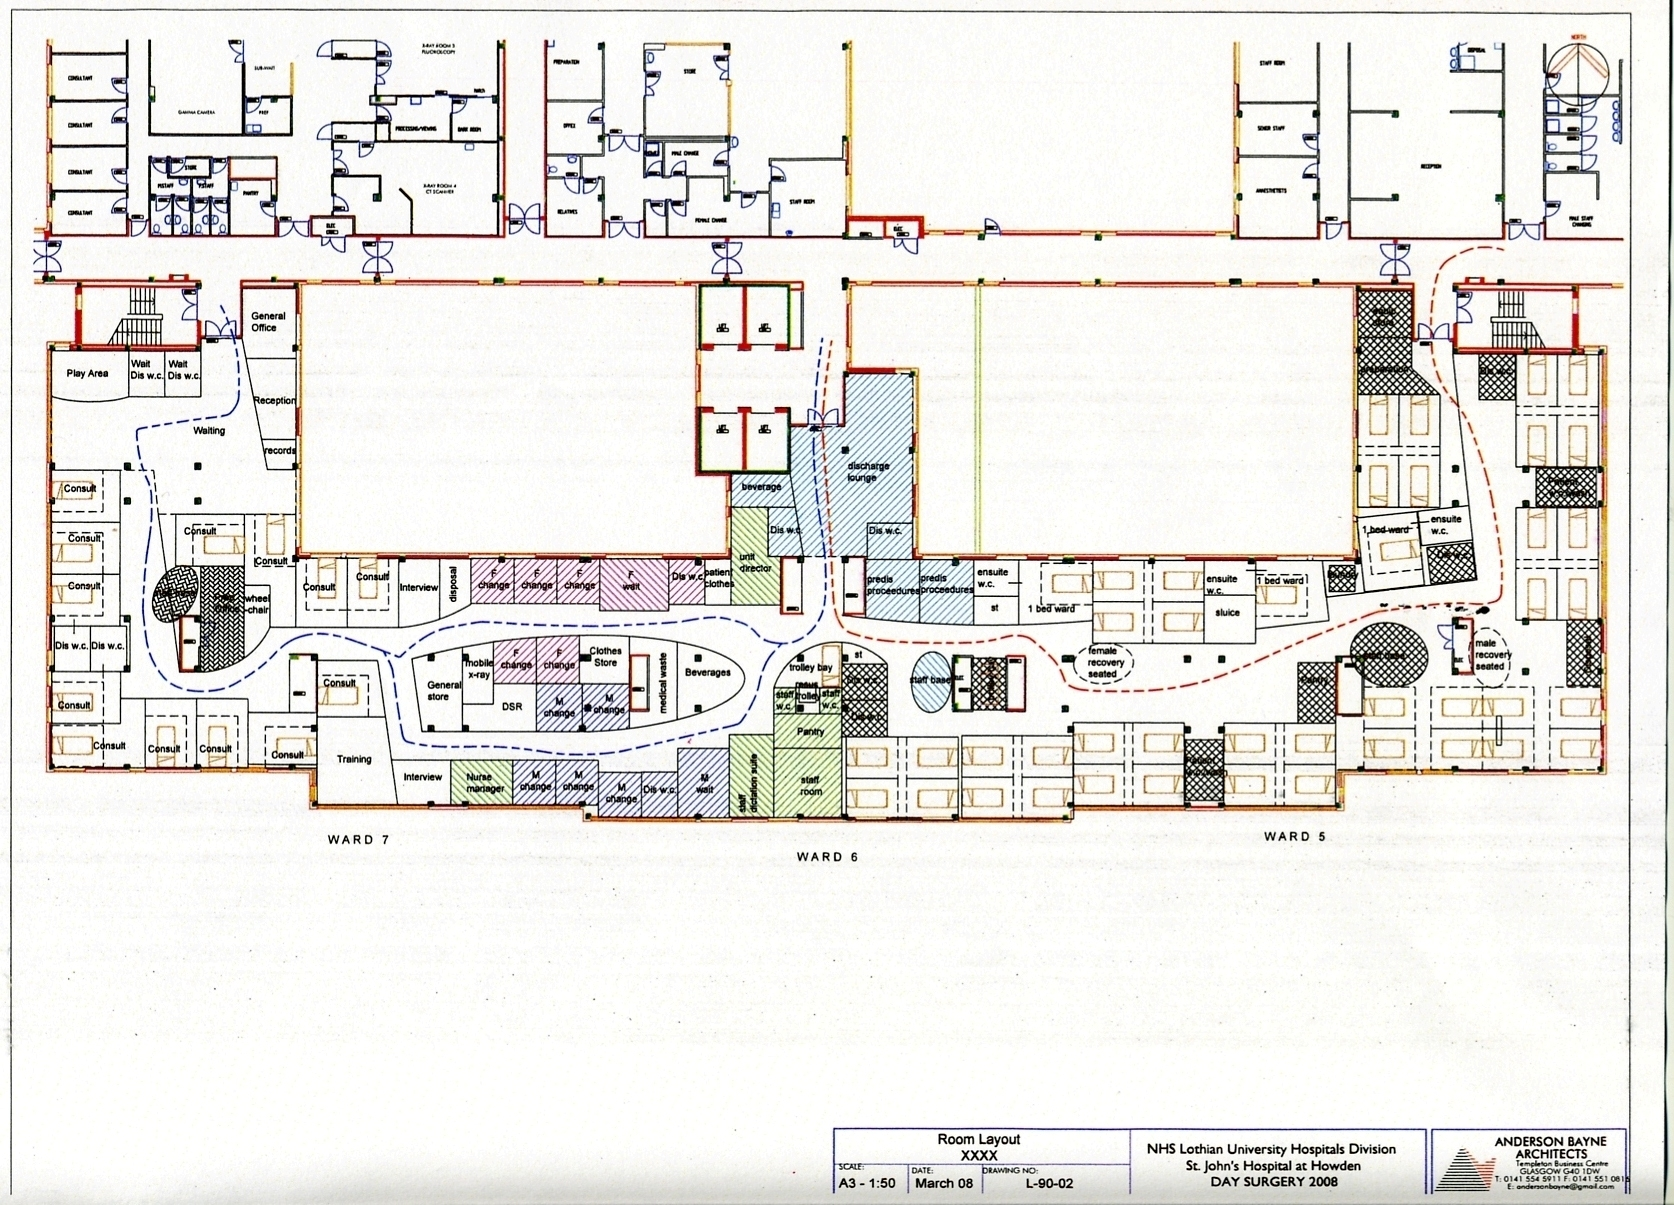 Latest news short stay elective surgery centre plan drawings malvernweather Images